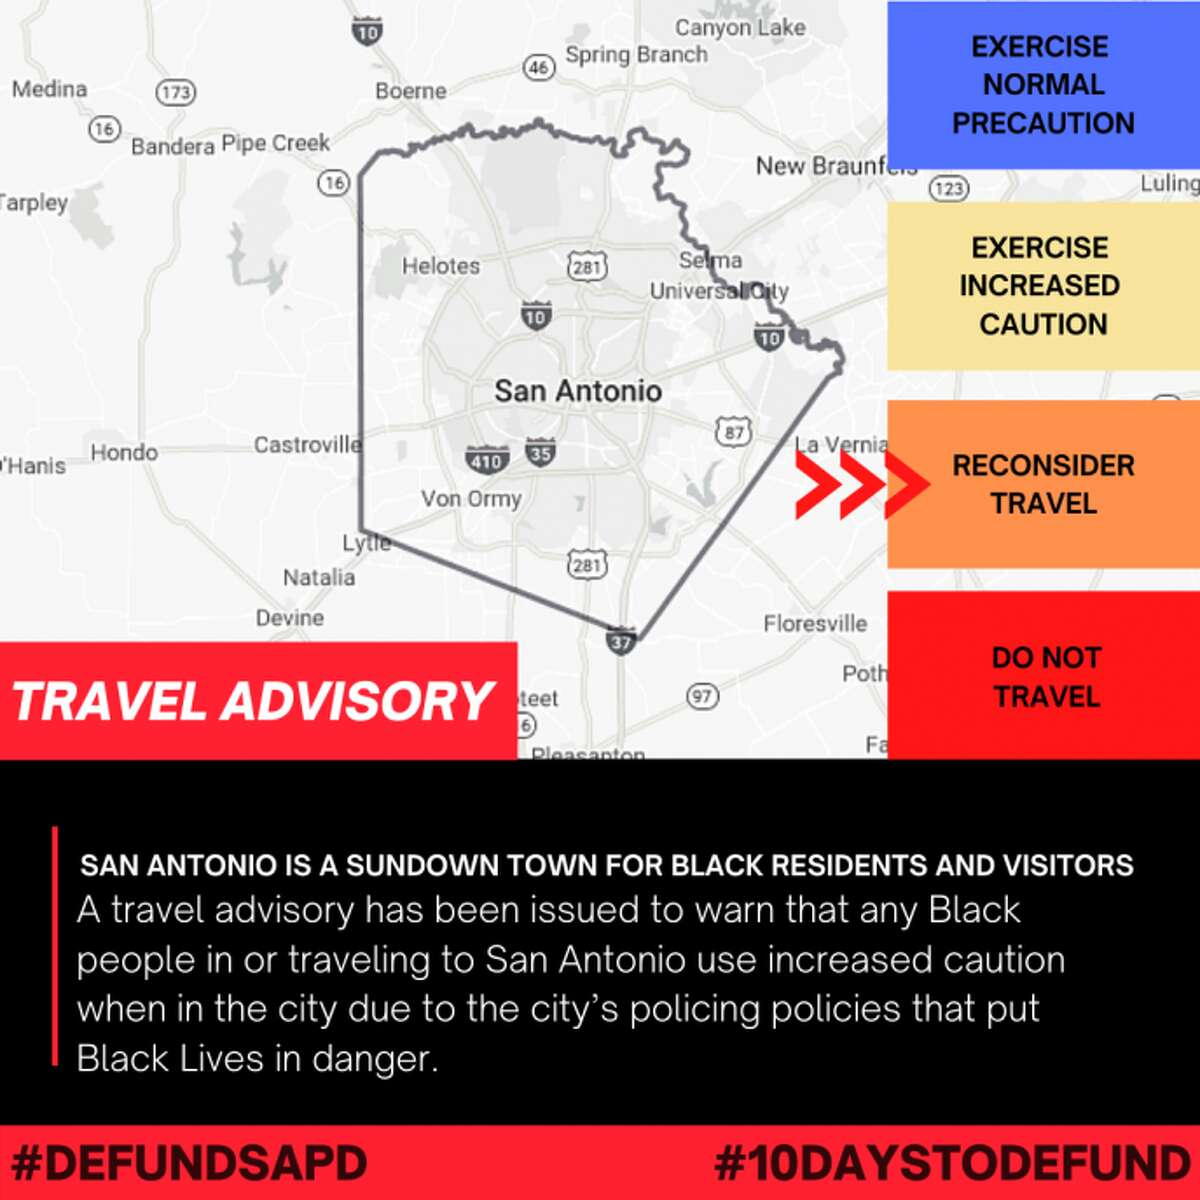 The Defund SAPD Coalition has issued a travel warning labeling San Antonio a